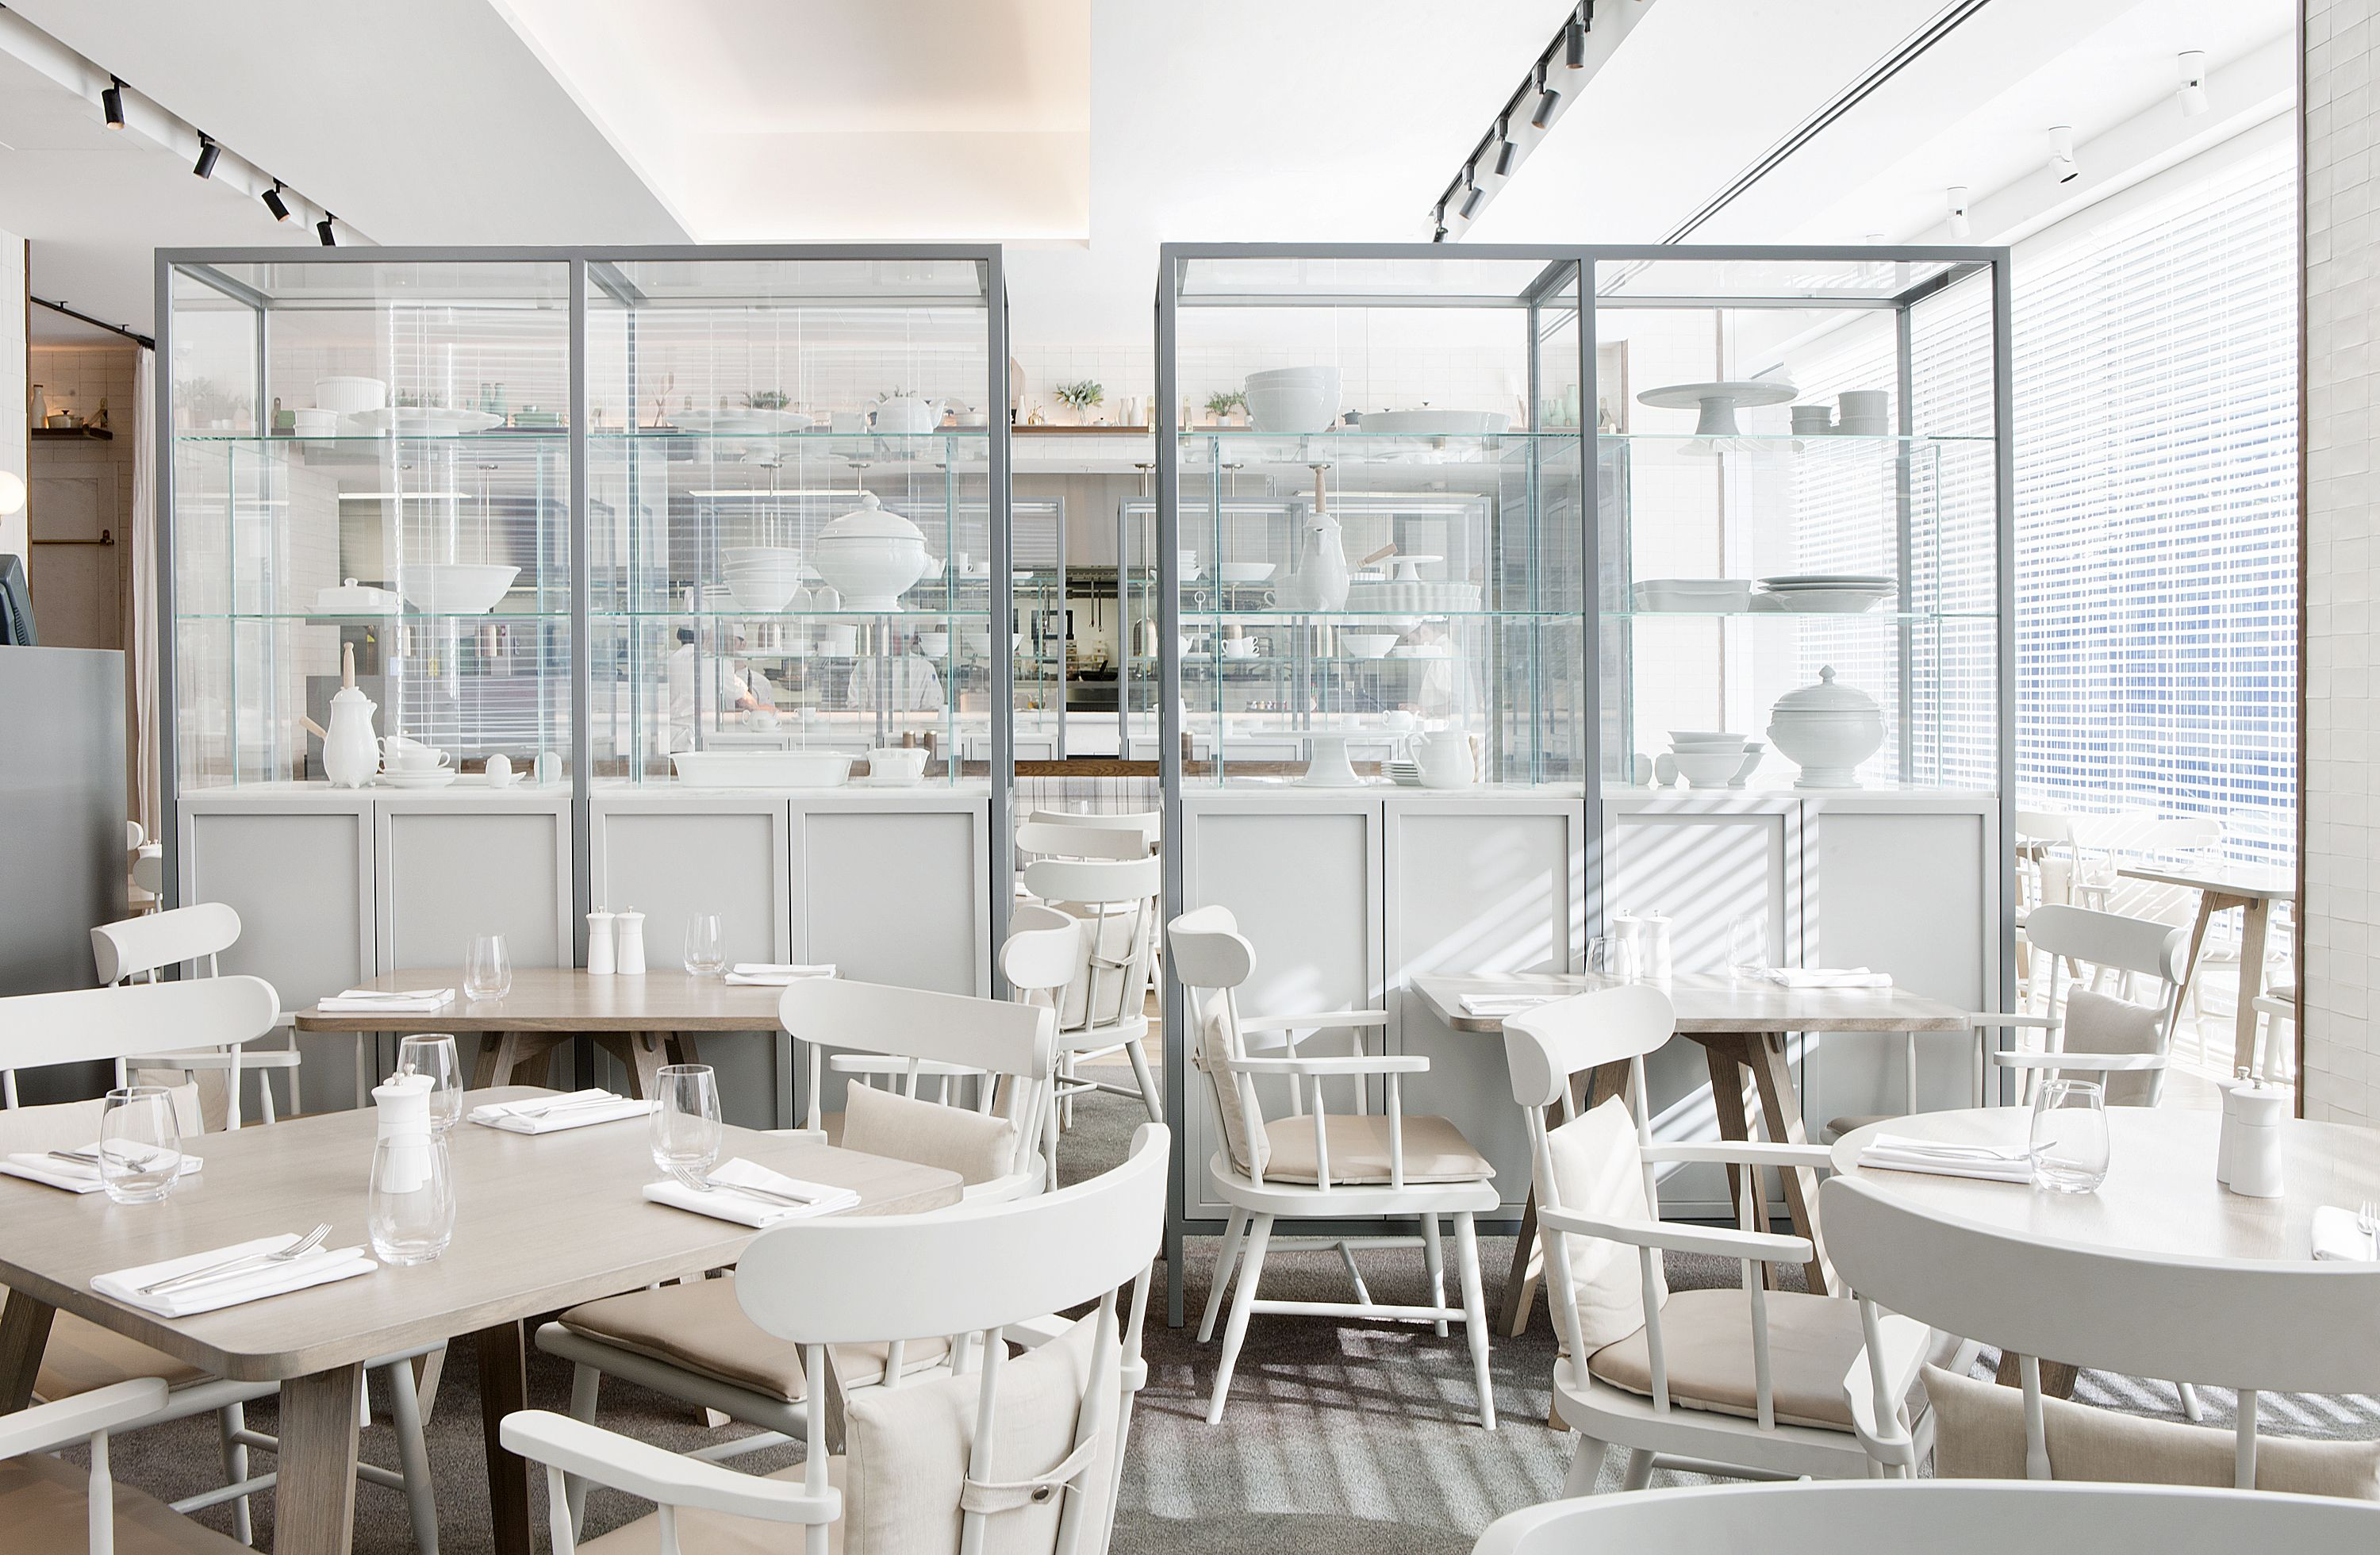 Little Collins St. Kitchen by Hecker Guthrie www.heckerguthrie.com ...